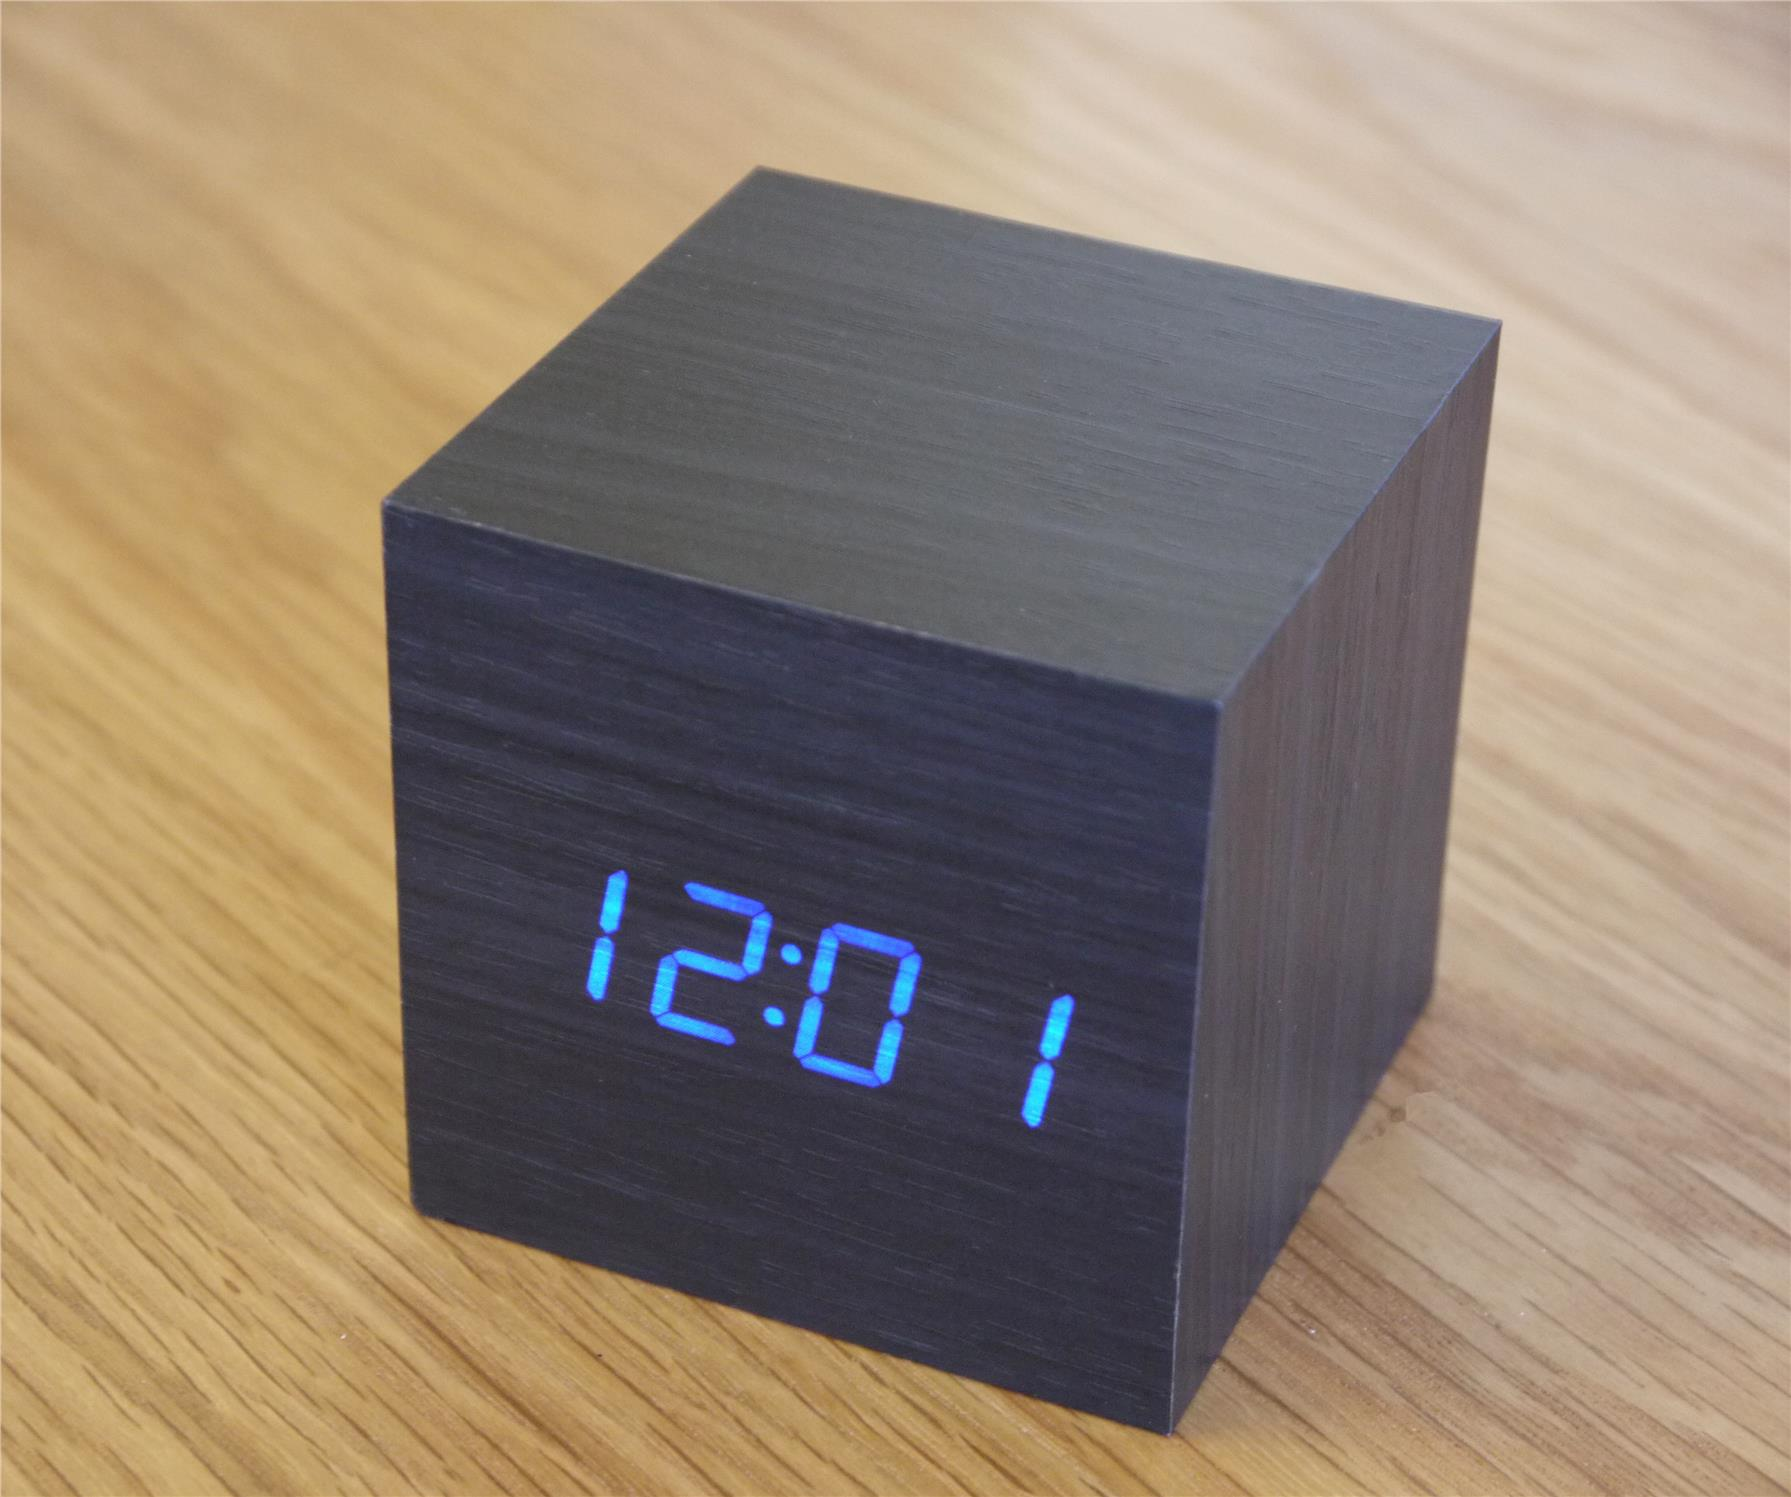 airgear mini wooden cube led alarm c end 7 28 2019 3 15 pm. Black Bedroom Furniture Sets. Home Design Ideas